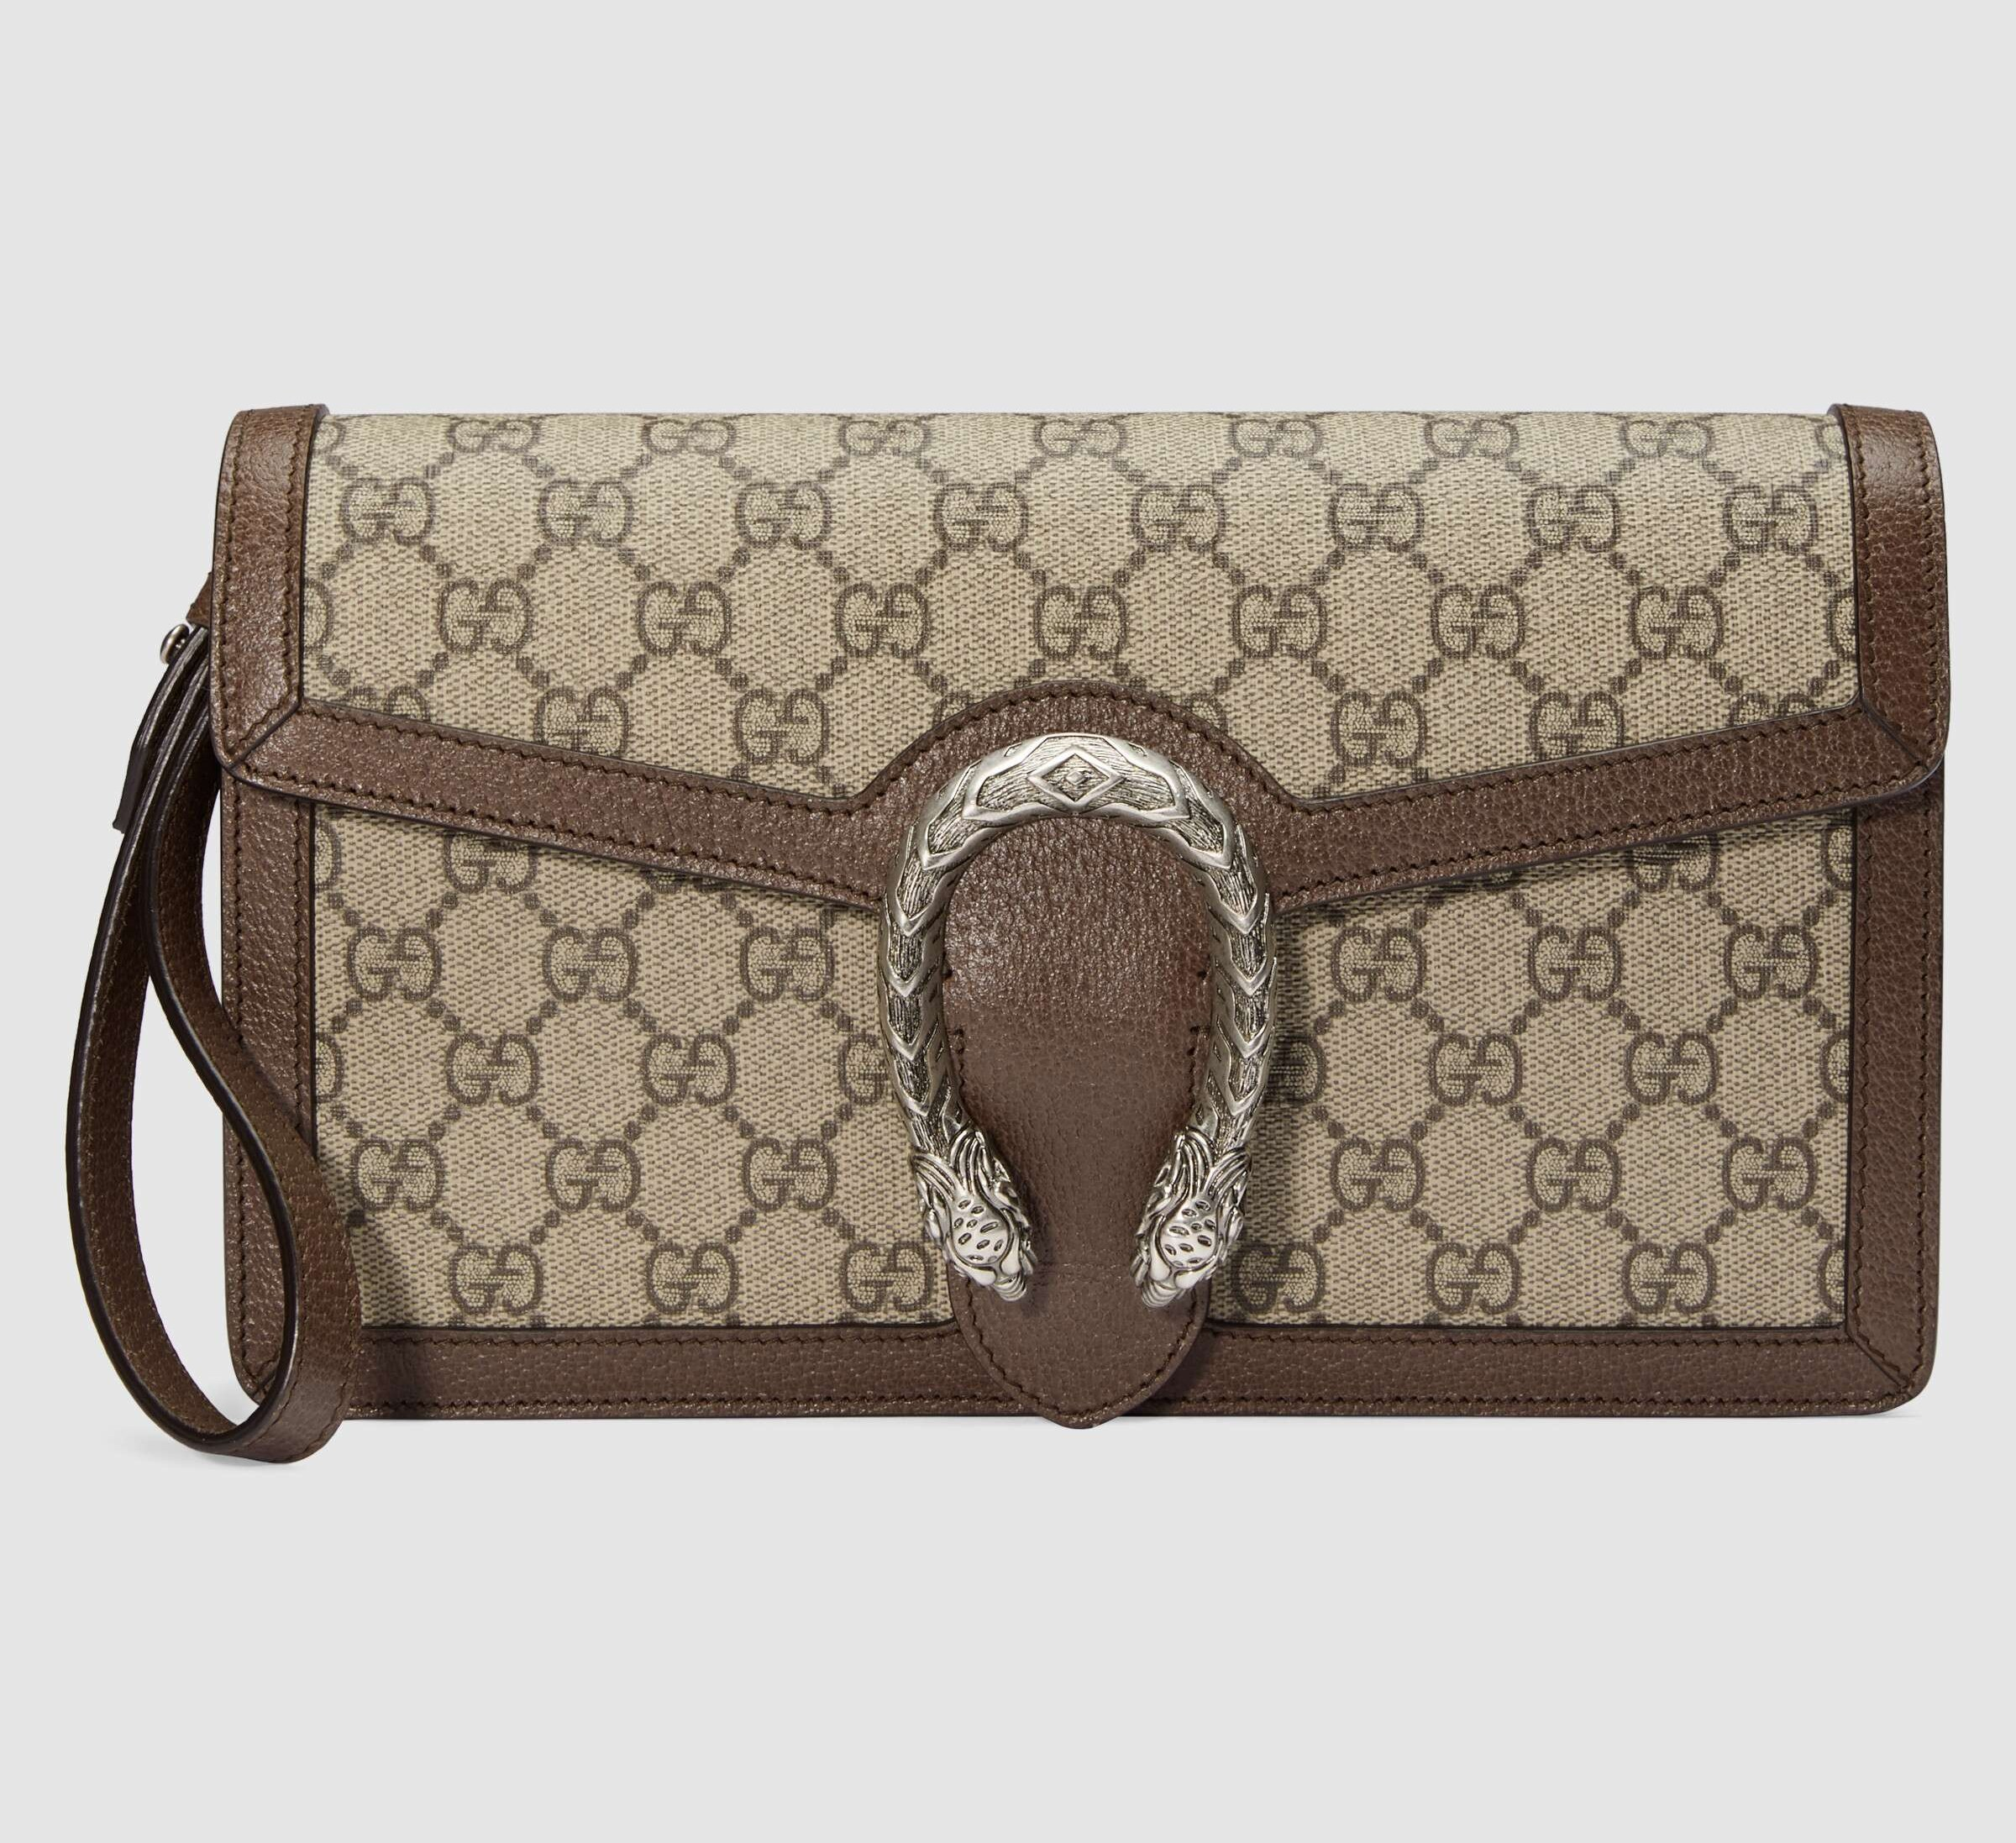 Gucci Dionysus GG Supreme Clutch 621197 Brown Leather